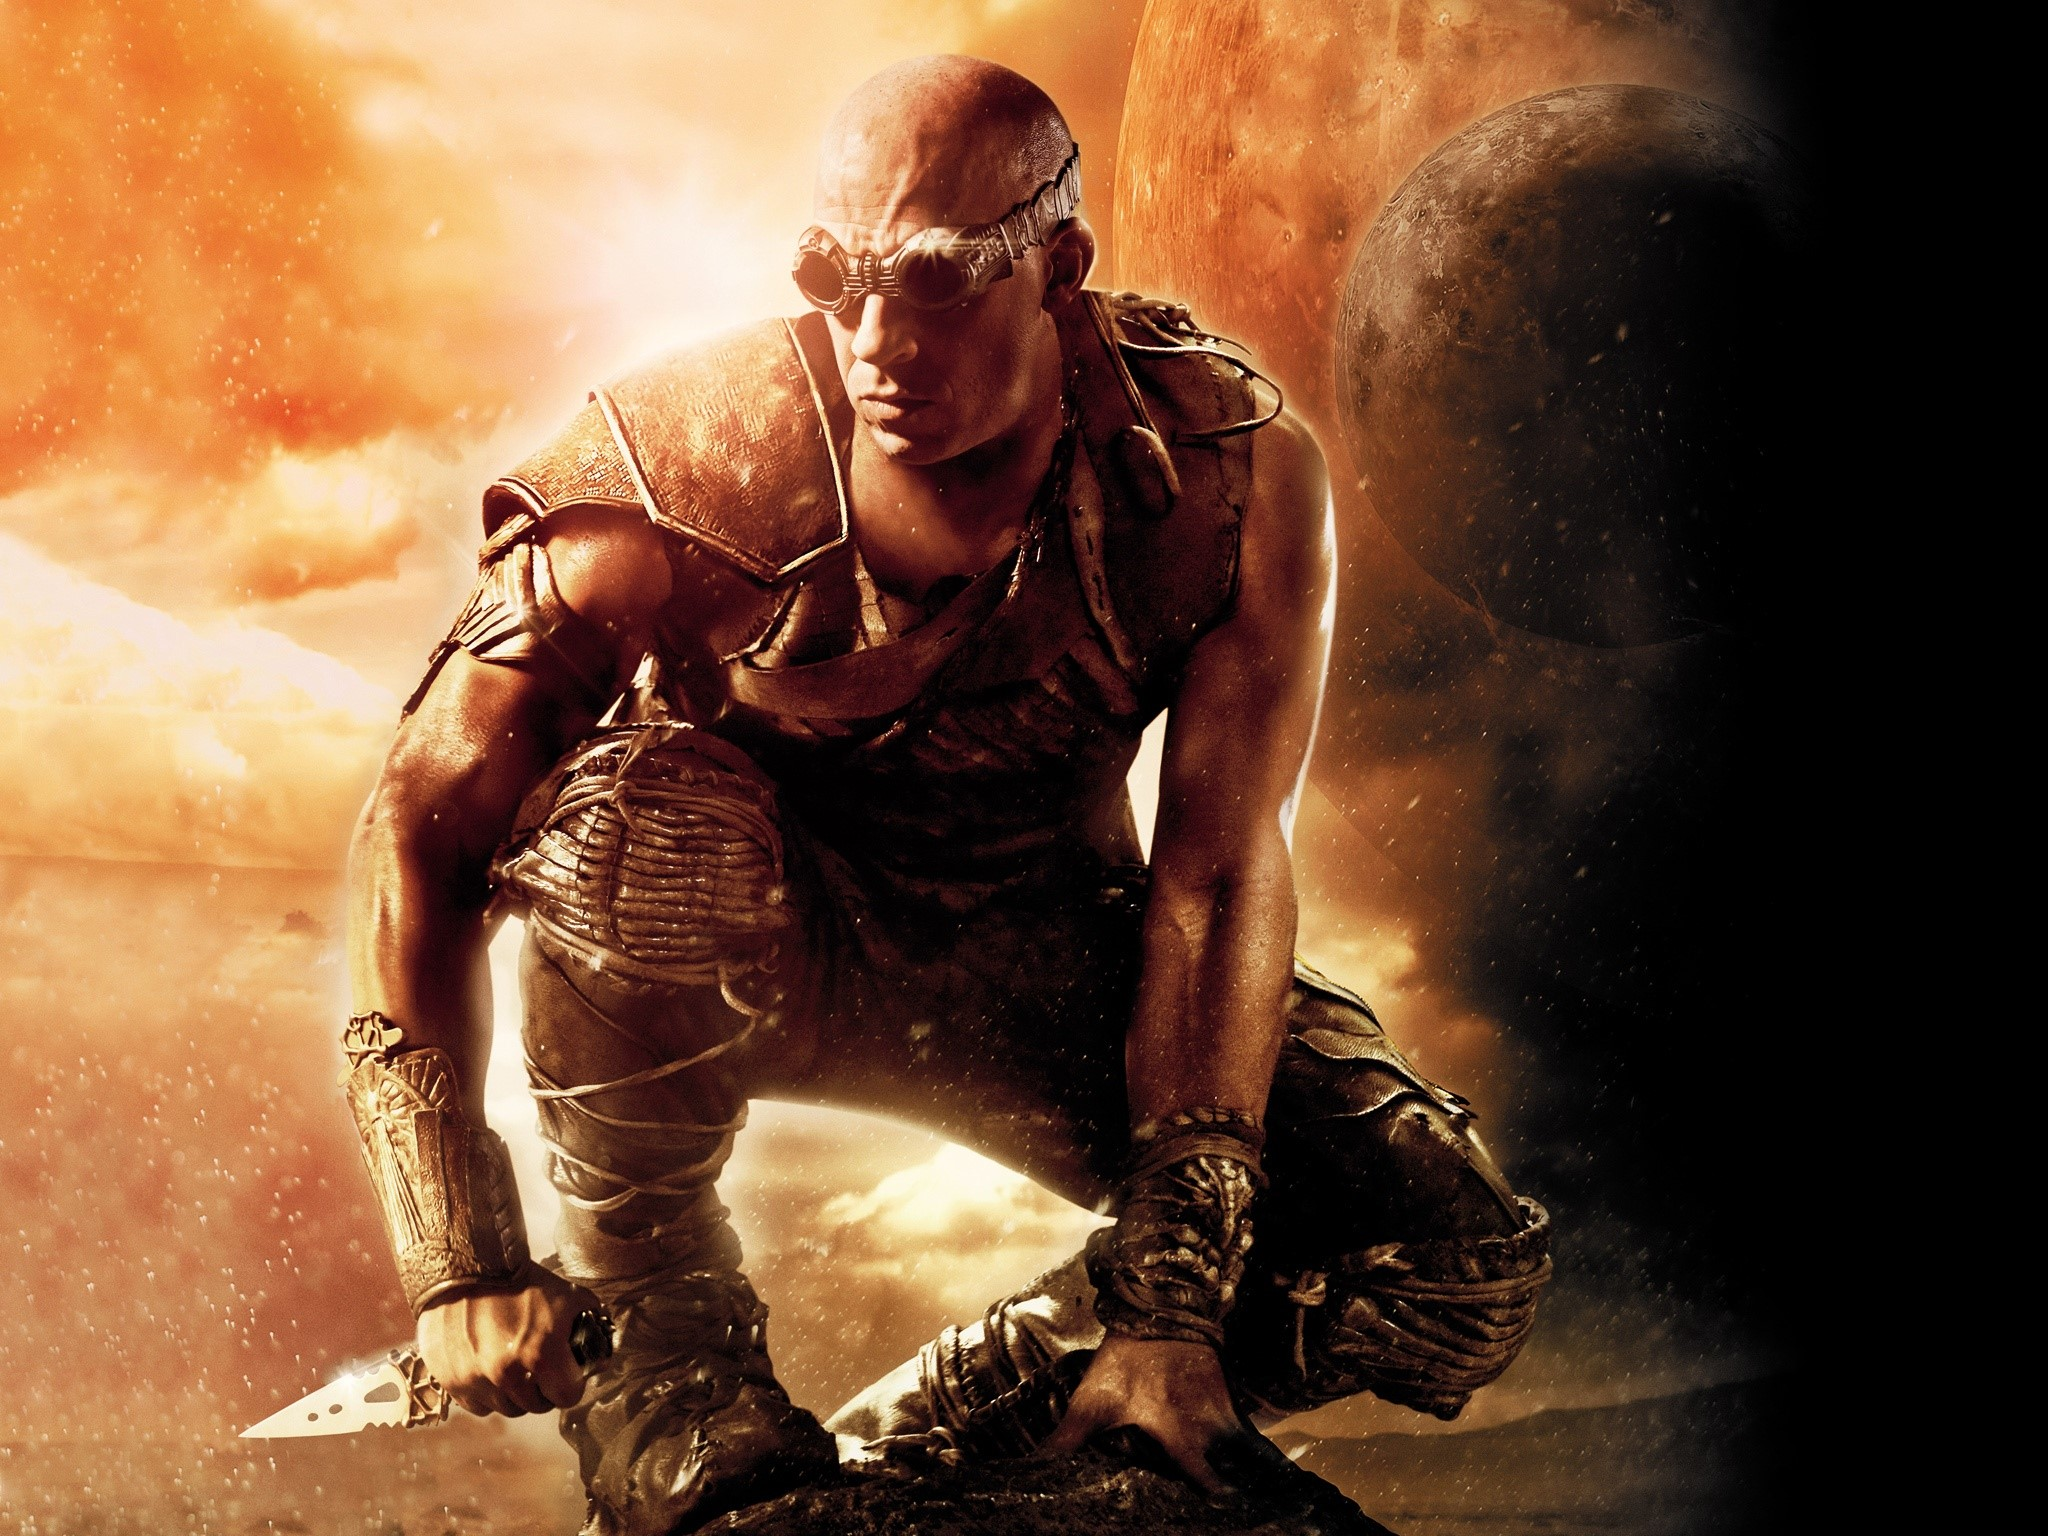 Wallpaper The Battle of Riddick